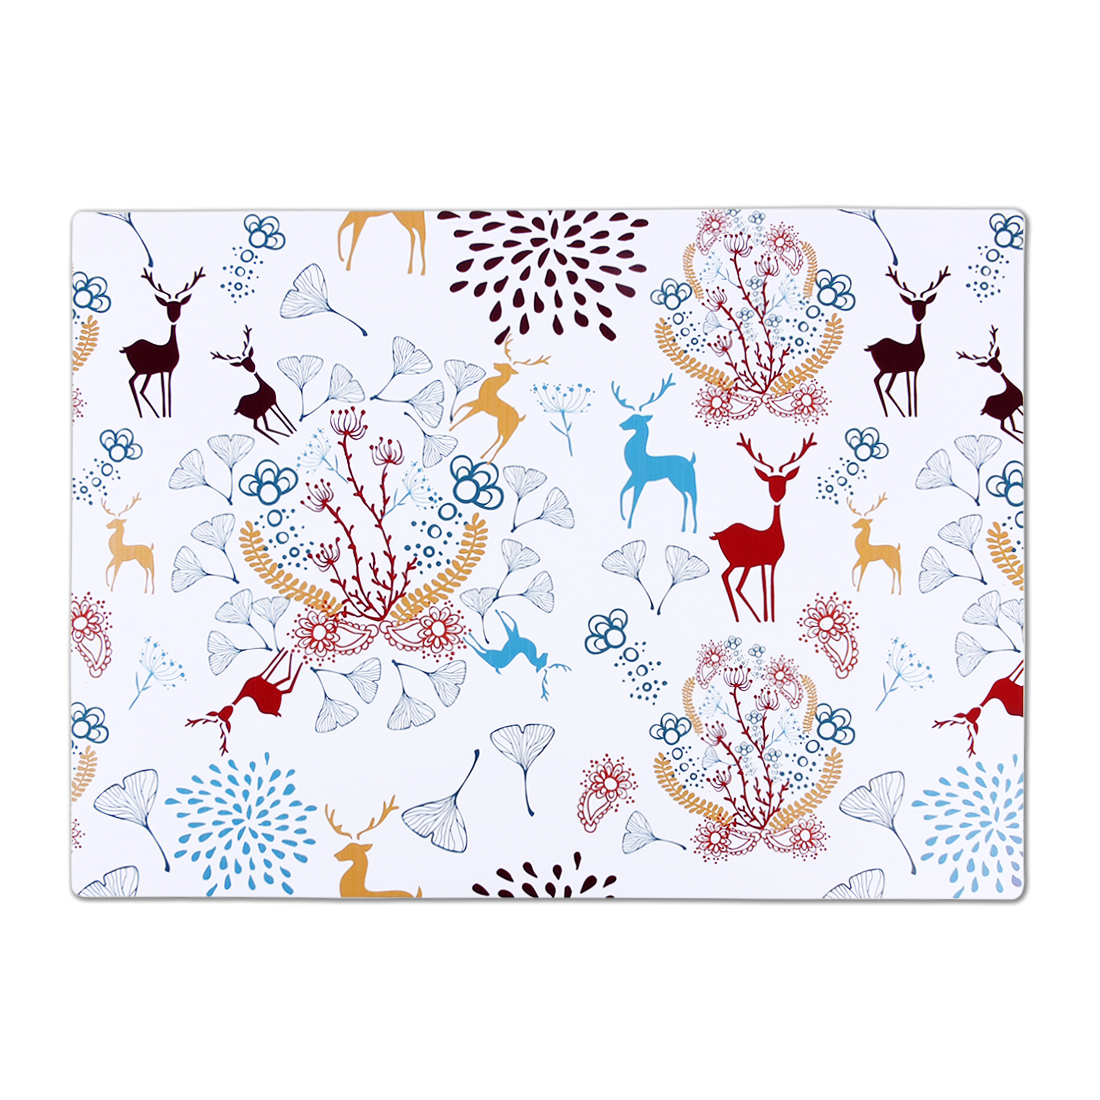 Desk Table Deer Print Waterproof Heat Insulated Extra Large Placemat Dinner Mat